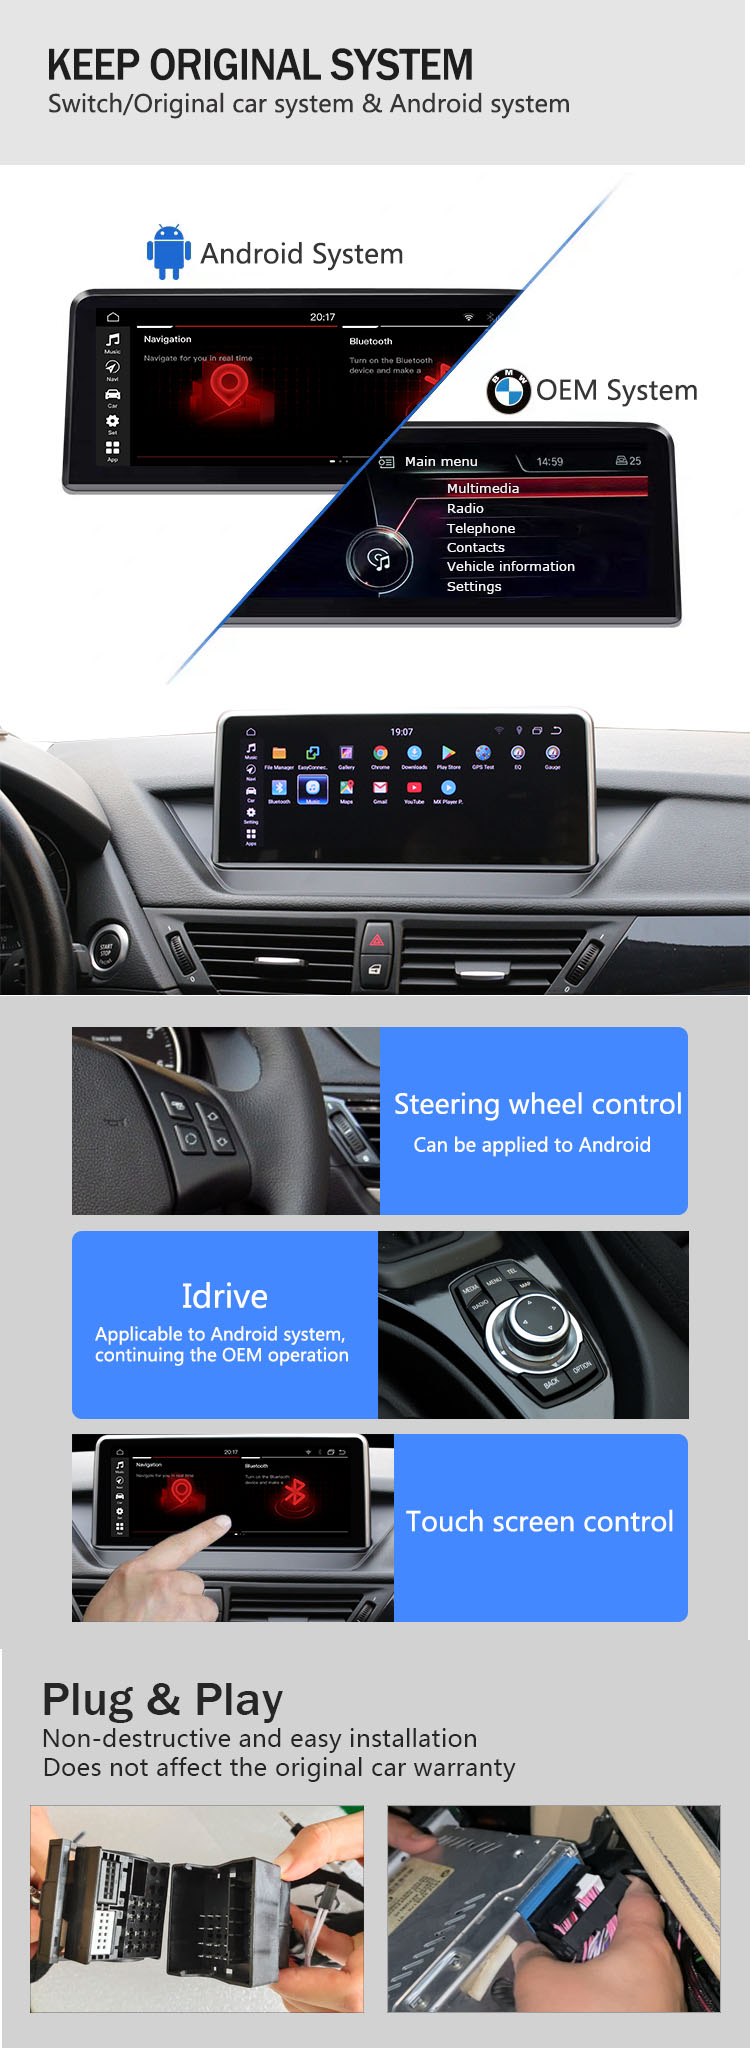 Mcx 10 25 64gb 32gb 8 Core Radio Multimedia Autoradio Screen Android For Bmw X5 E70 X6 E71 Navigation Gps Carplay 2007 2013 Buy E70 Android Autoradio Bmw X5 E70 Android Bmw X6 Screen Bmw